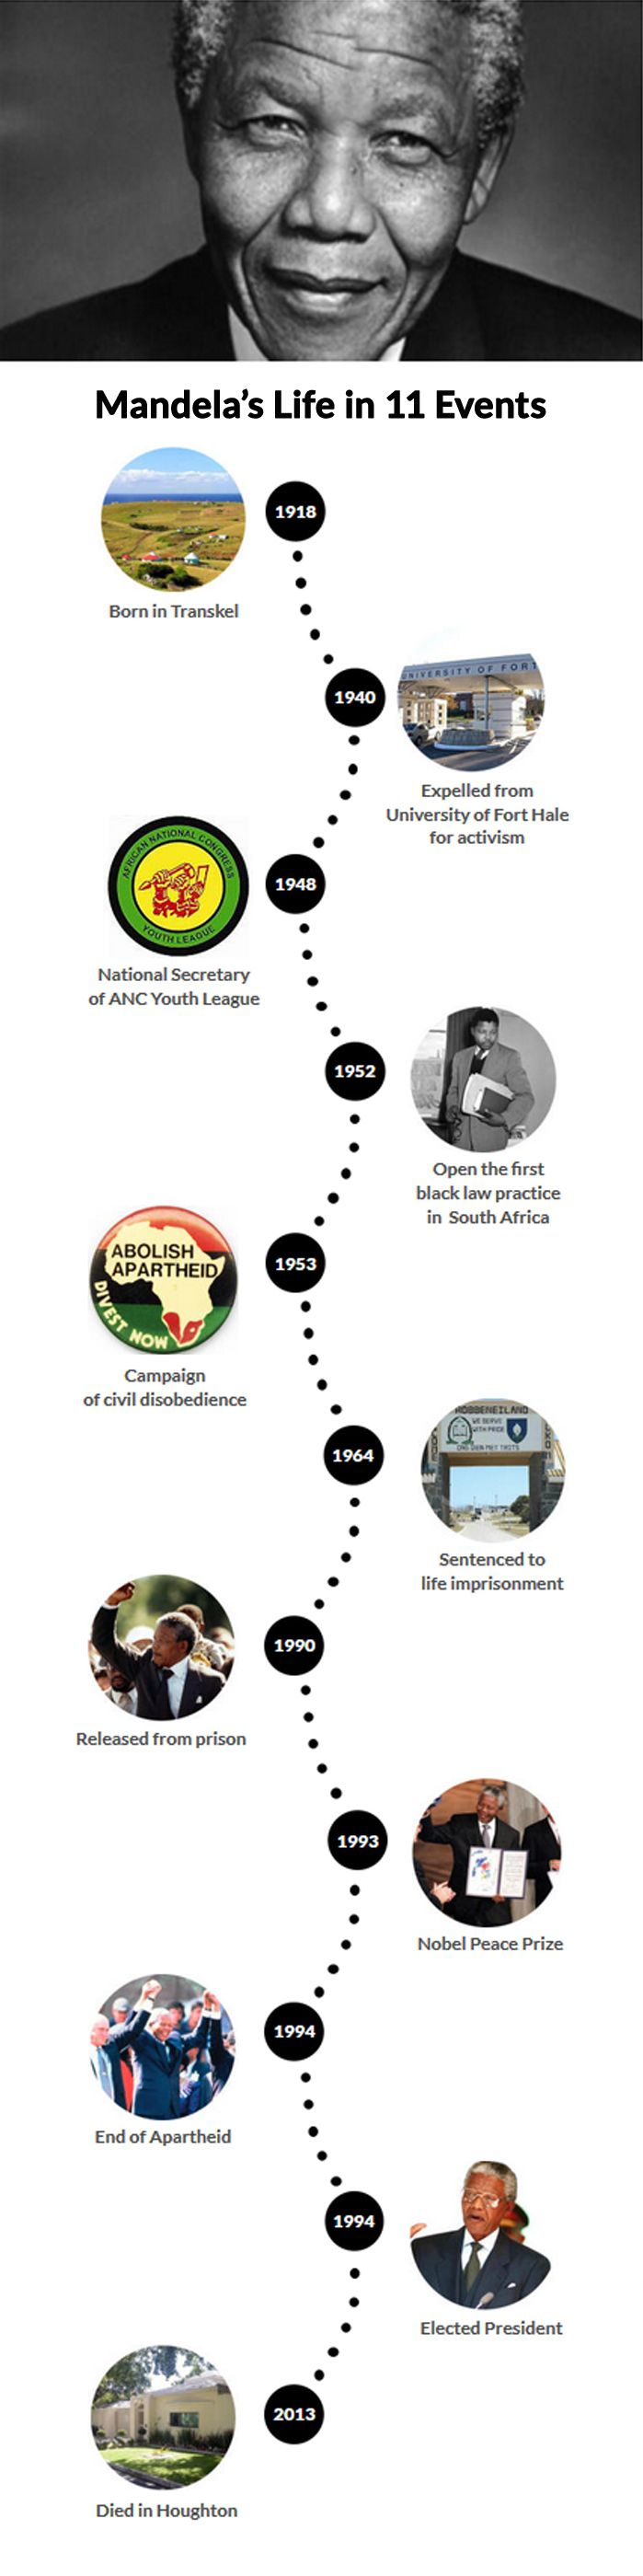 A Nelson Mandela biography timeline: his life story told in 11 key events. #mandela #timeline #biography